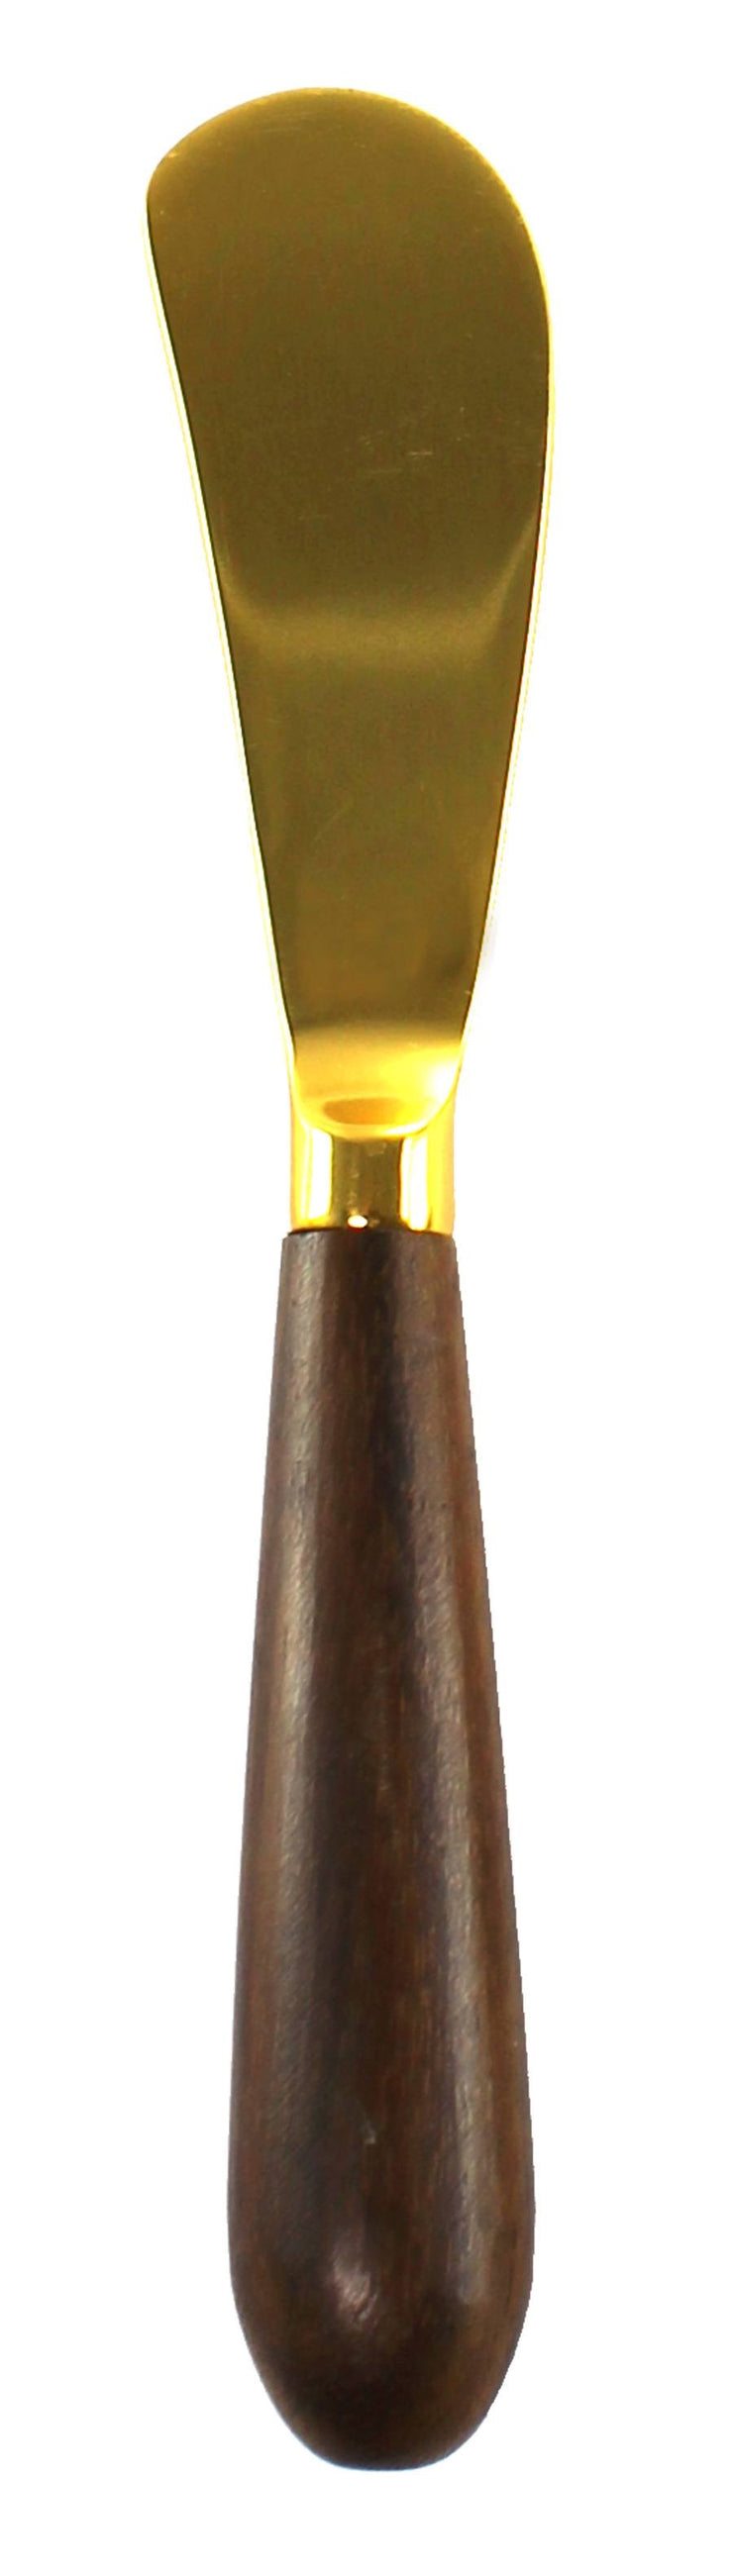 Gold and Wood Large Spreader